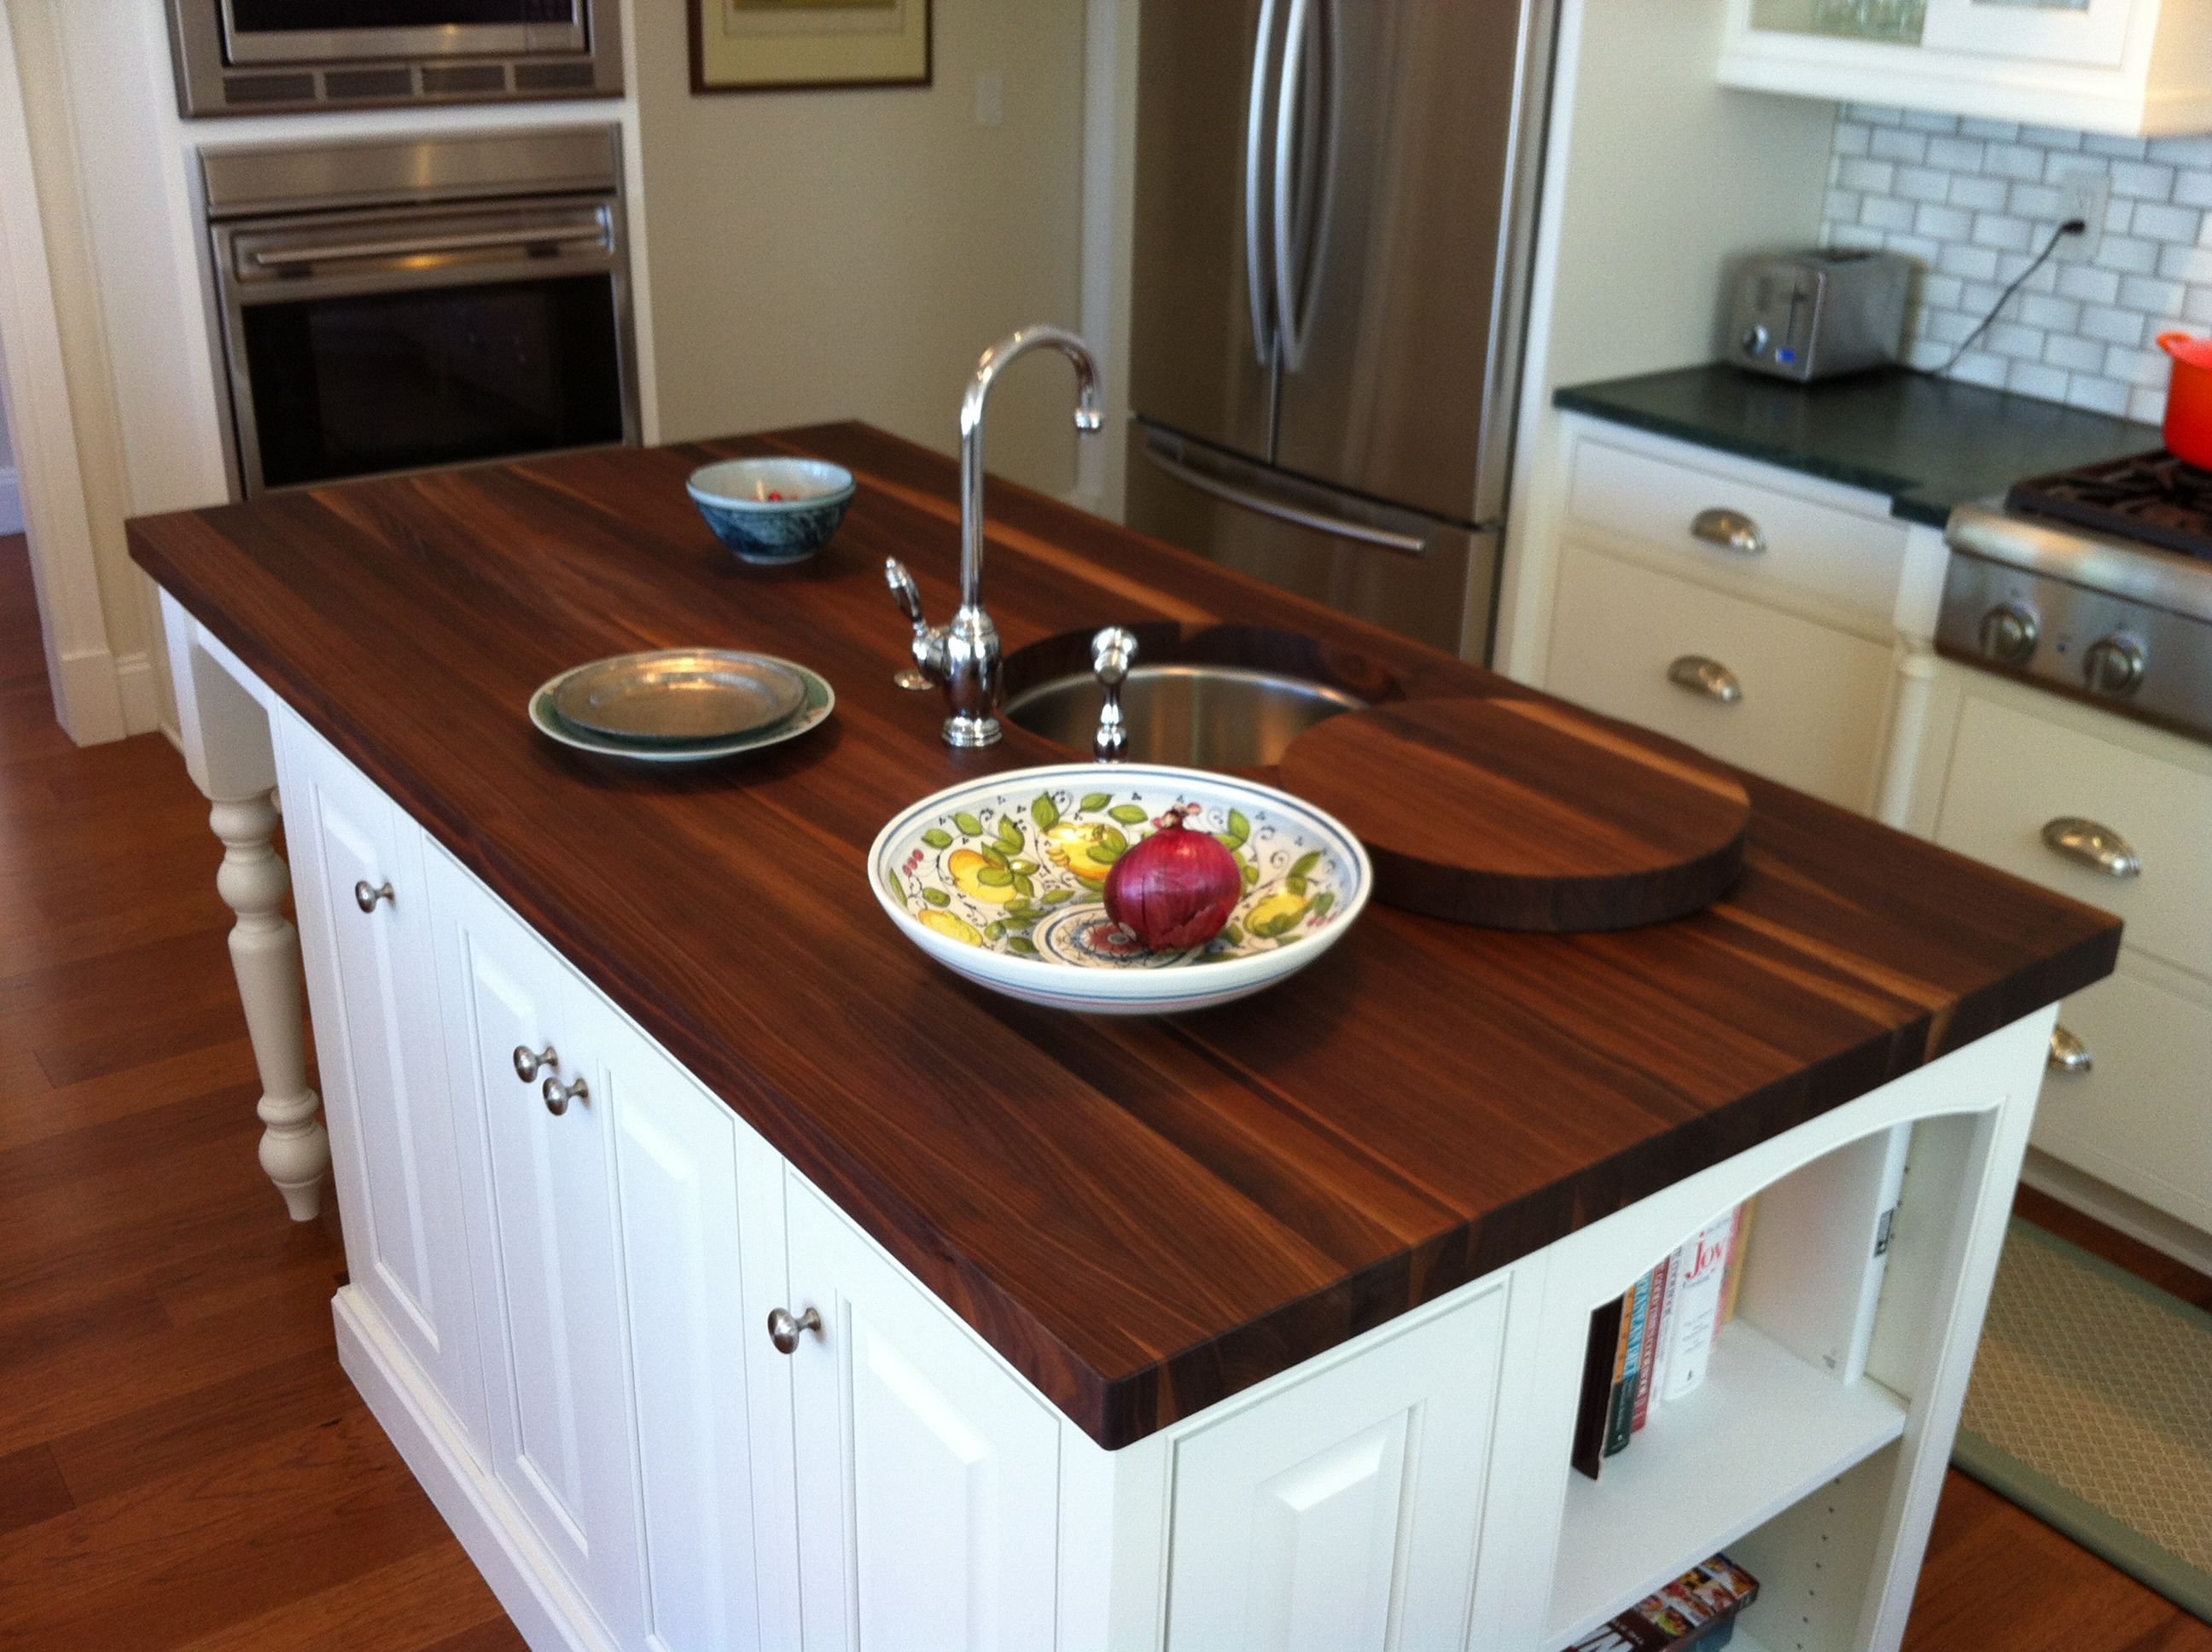 Uncategorized Wooden Kitchen Countertops charming and classy wooden kitchen countertops islands countertops